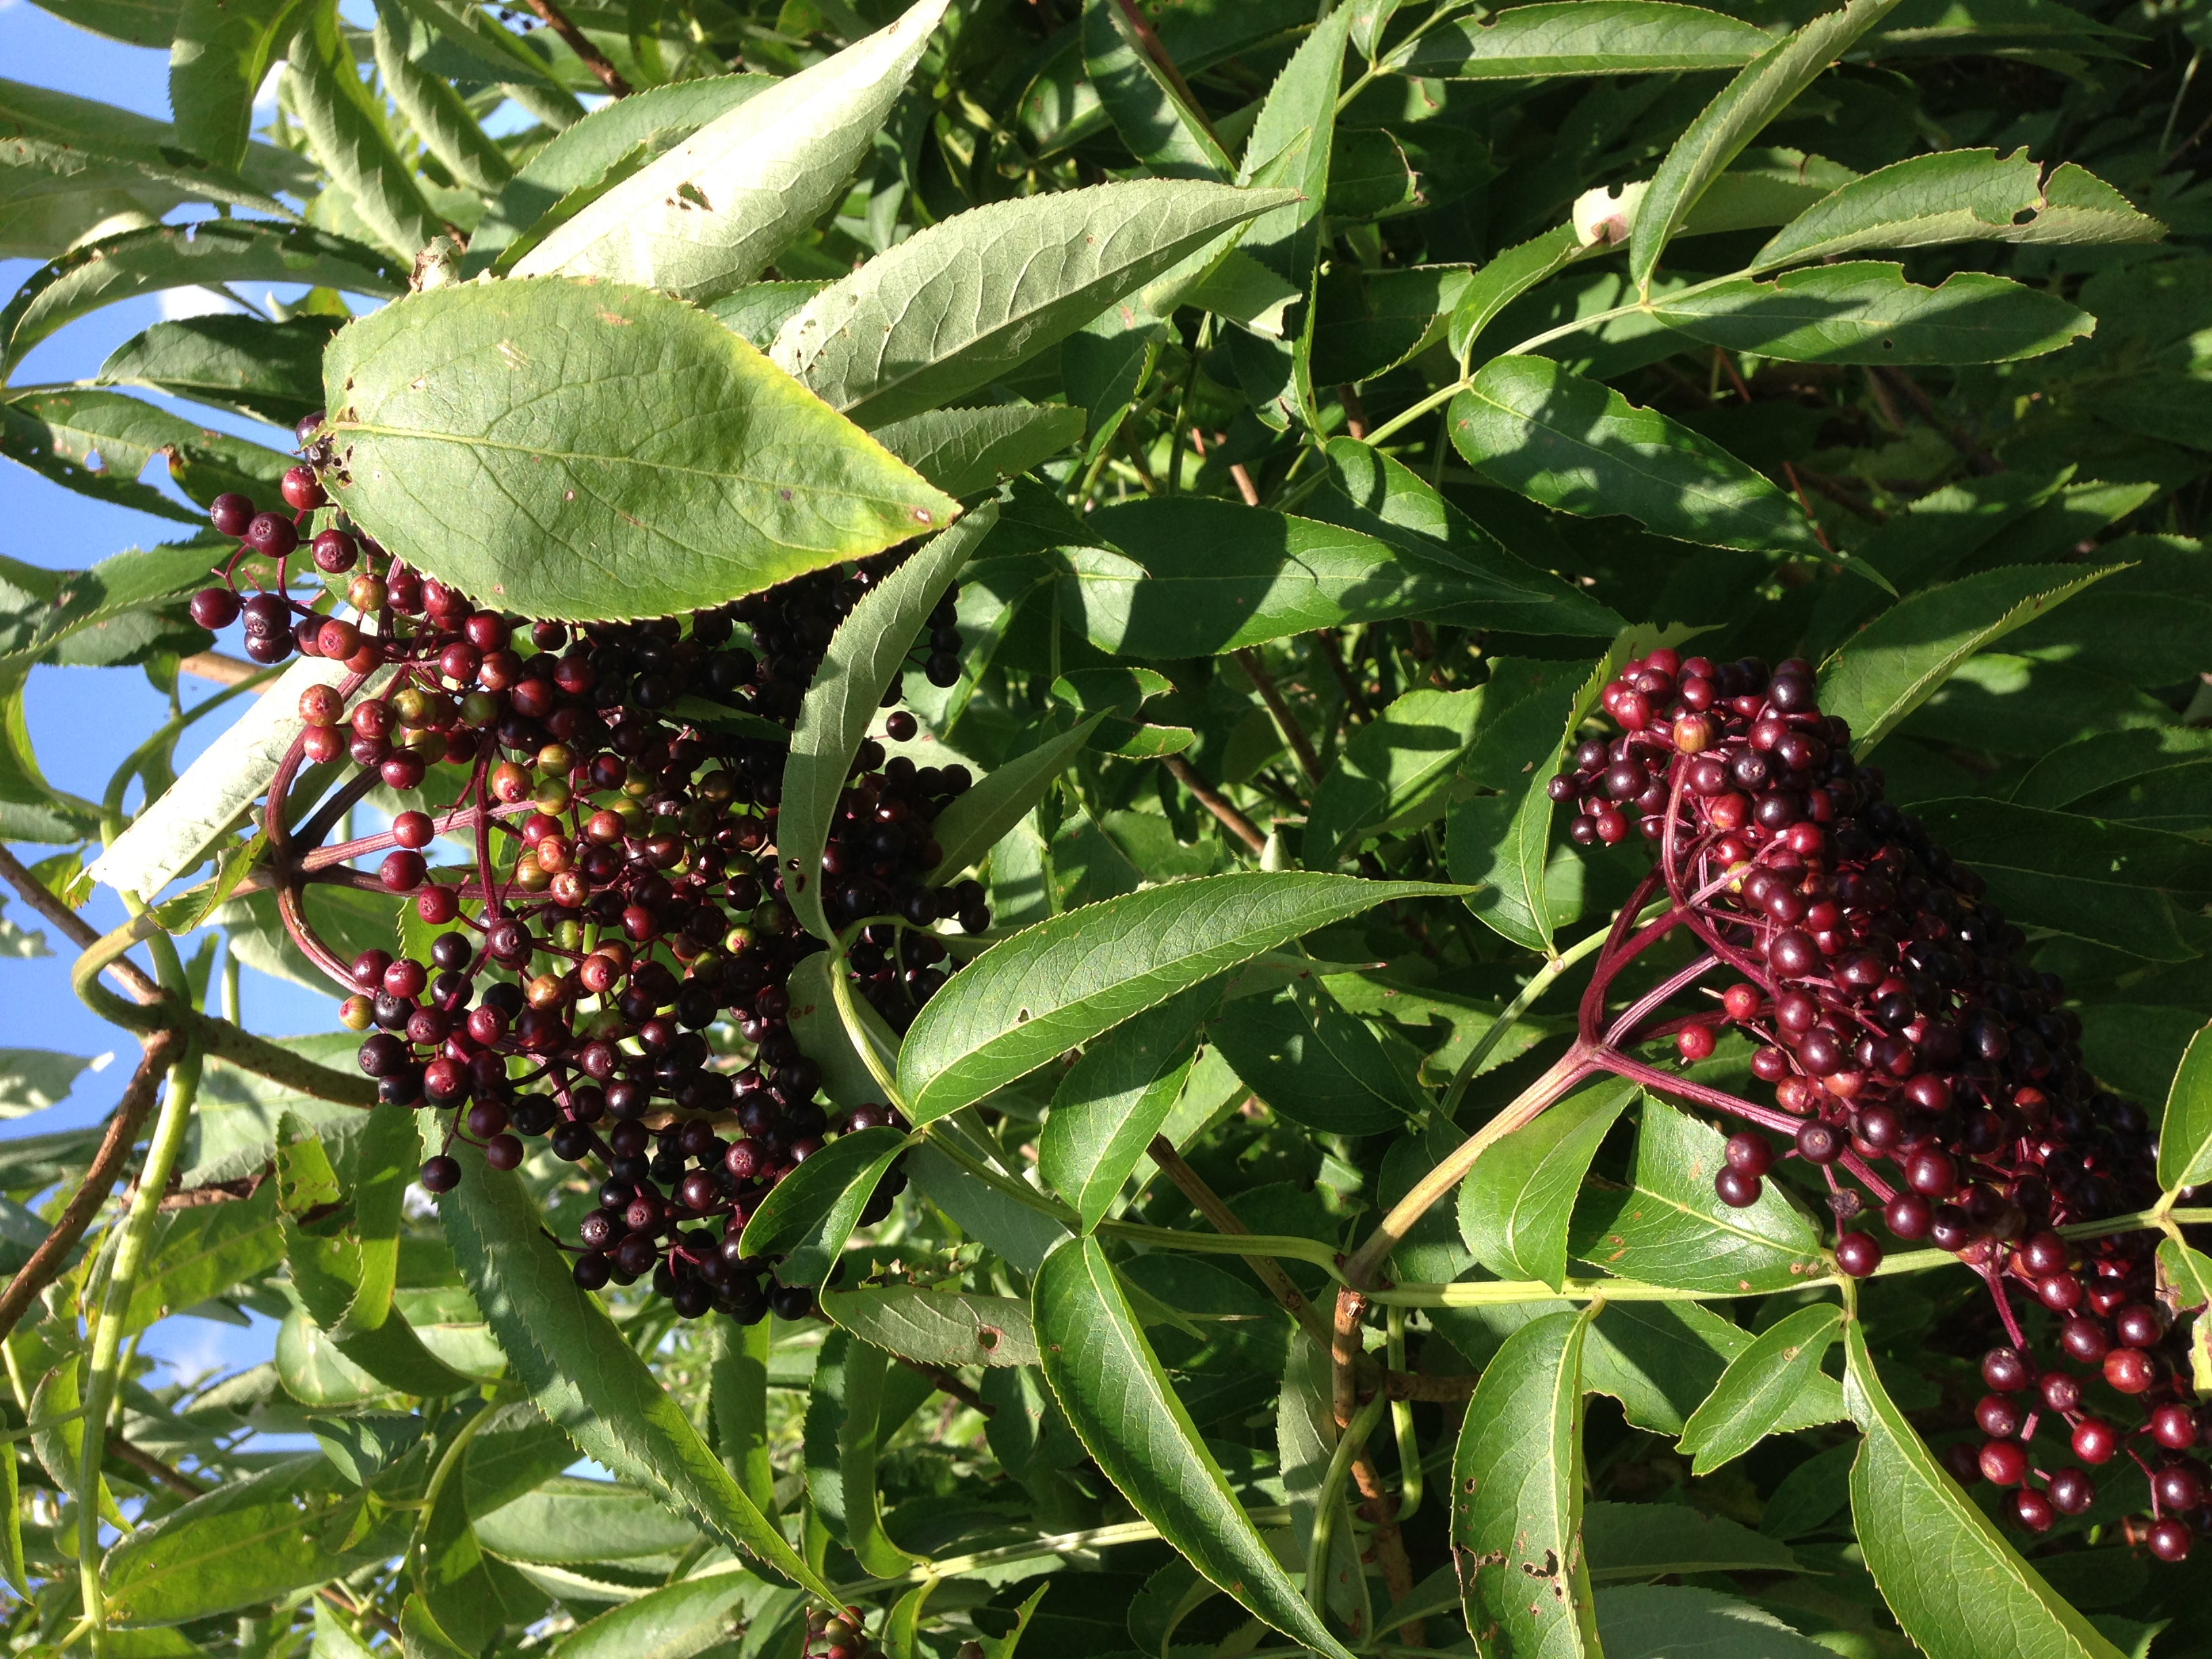 Elderberries on the tree about to be made into healing syrup!